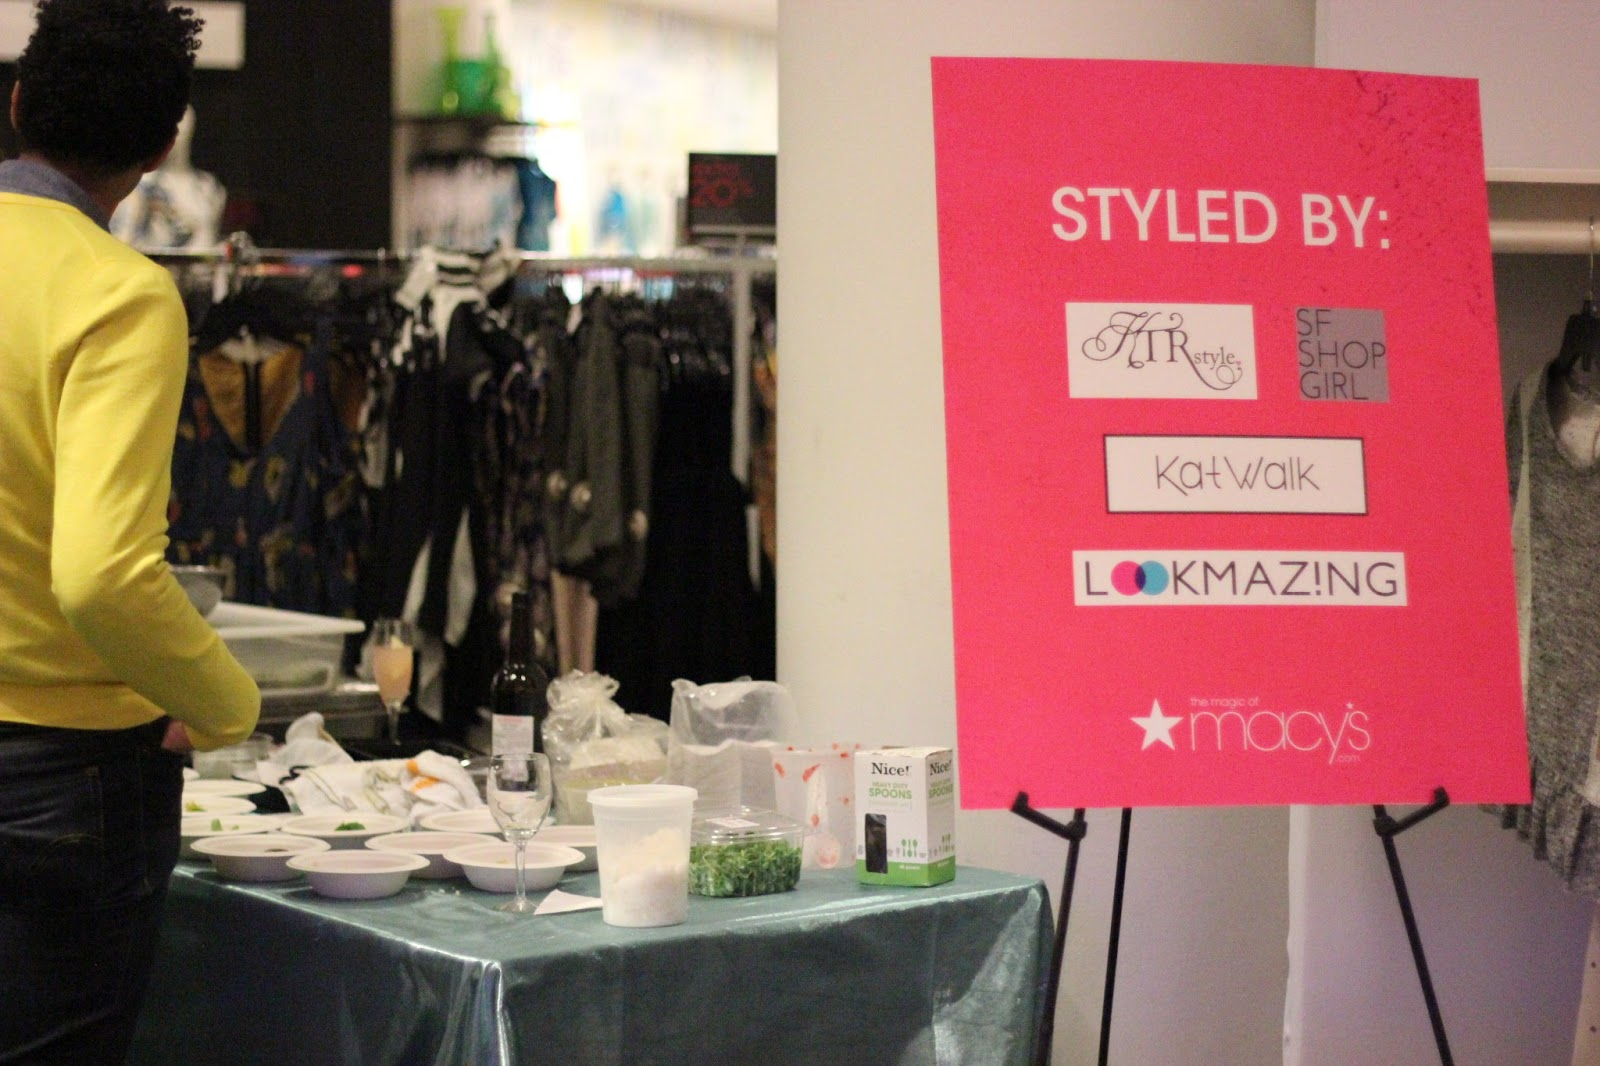 Macy's and Lookmazing